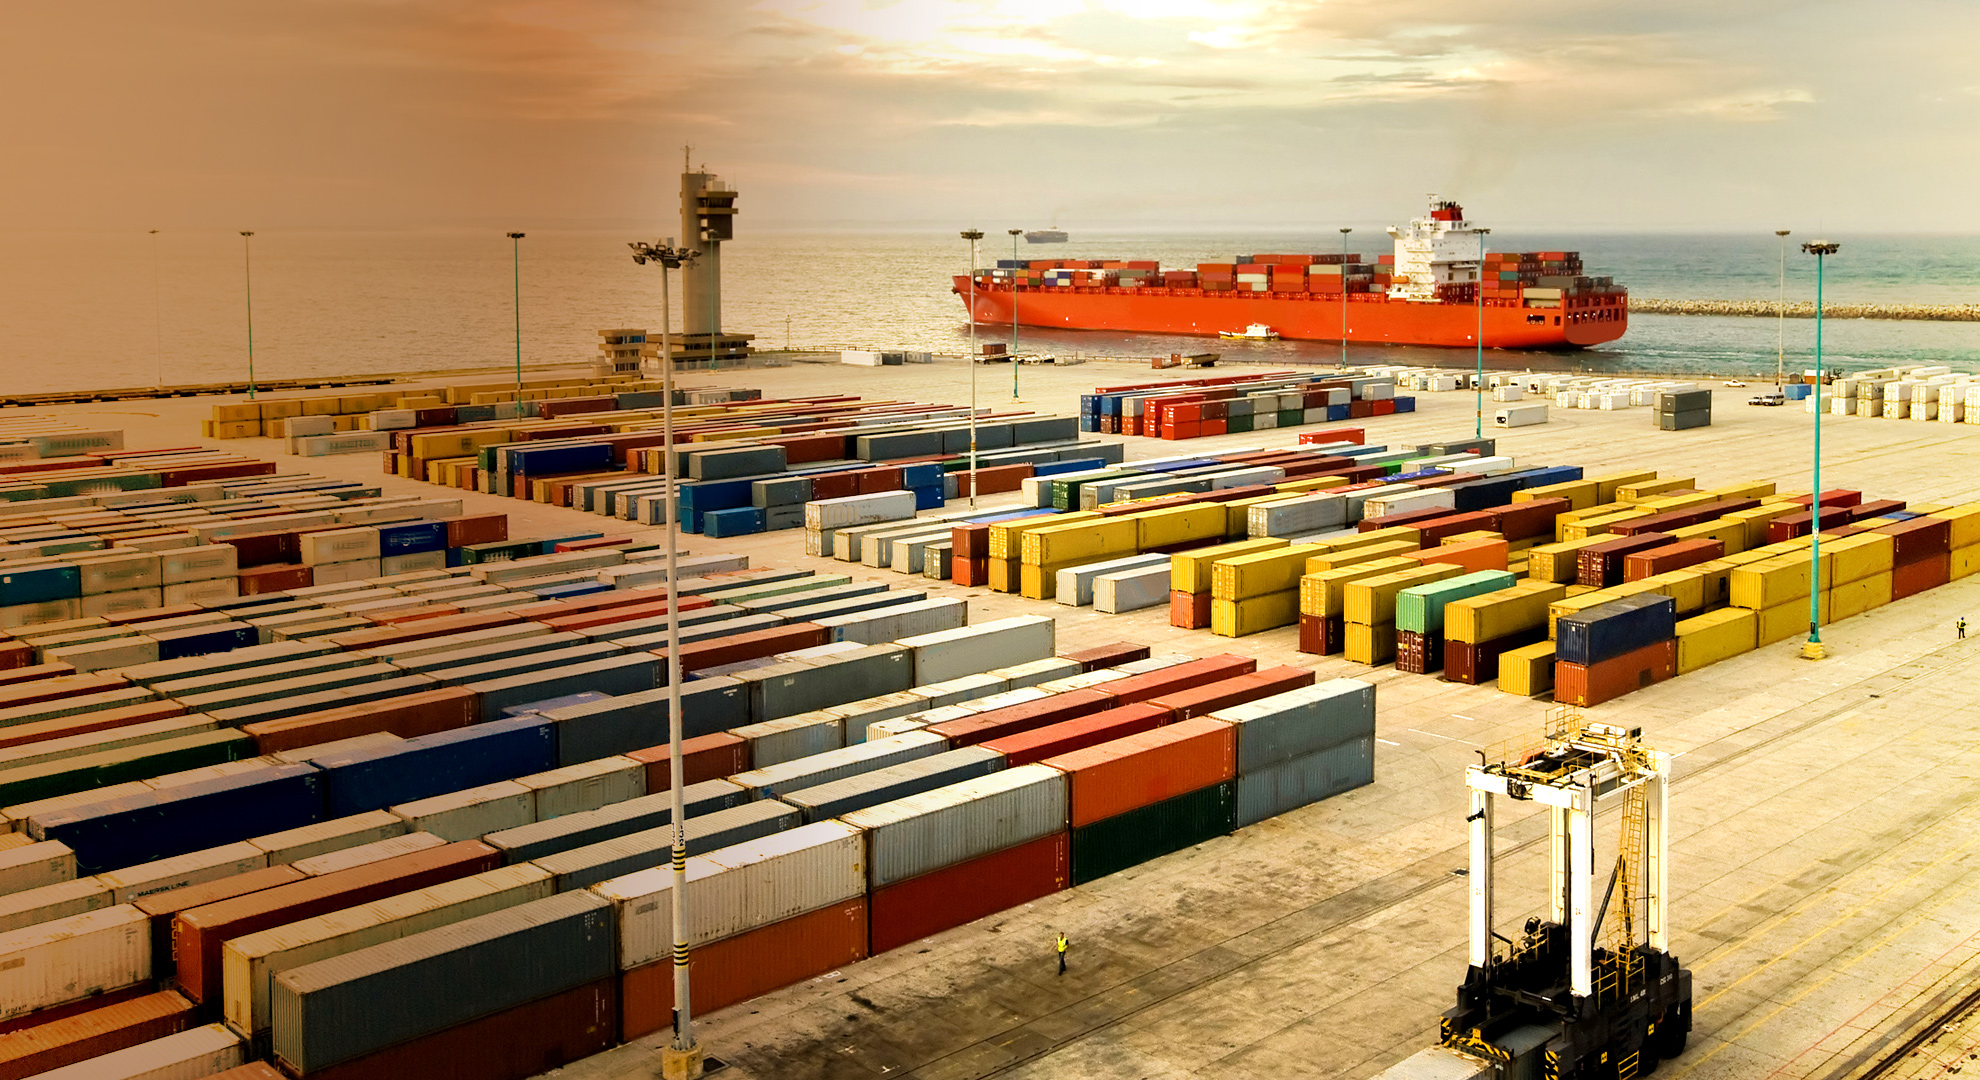 thesis support outsourcing Logistics outsourcing: lessons from case studies logistics outsourcing: lessons from case studies 207 and support, the right people on the outsourcing team.